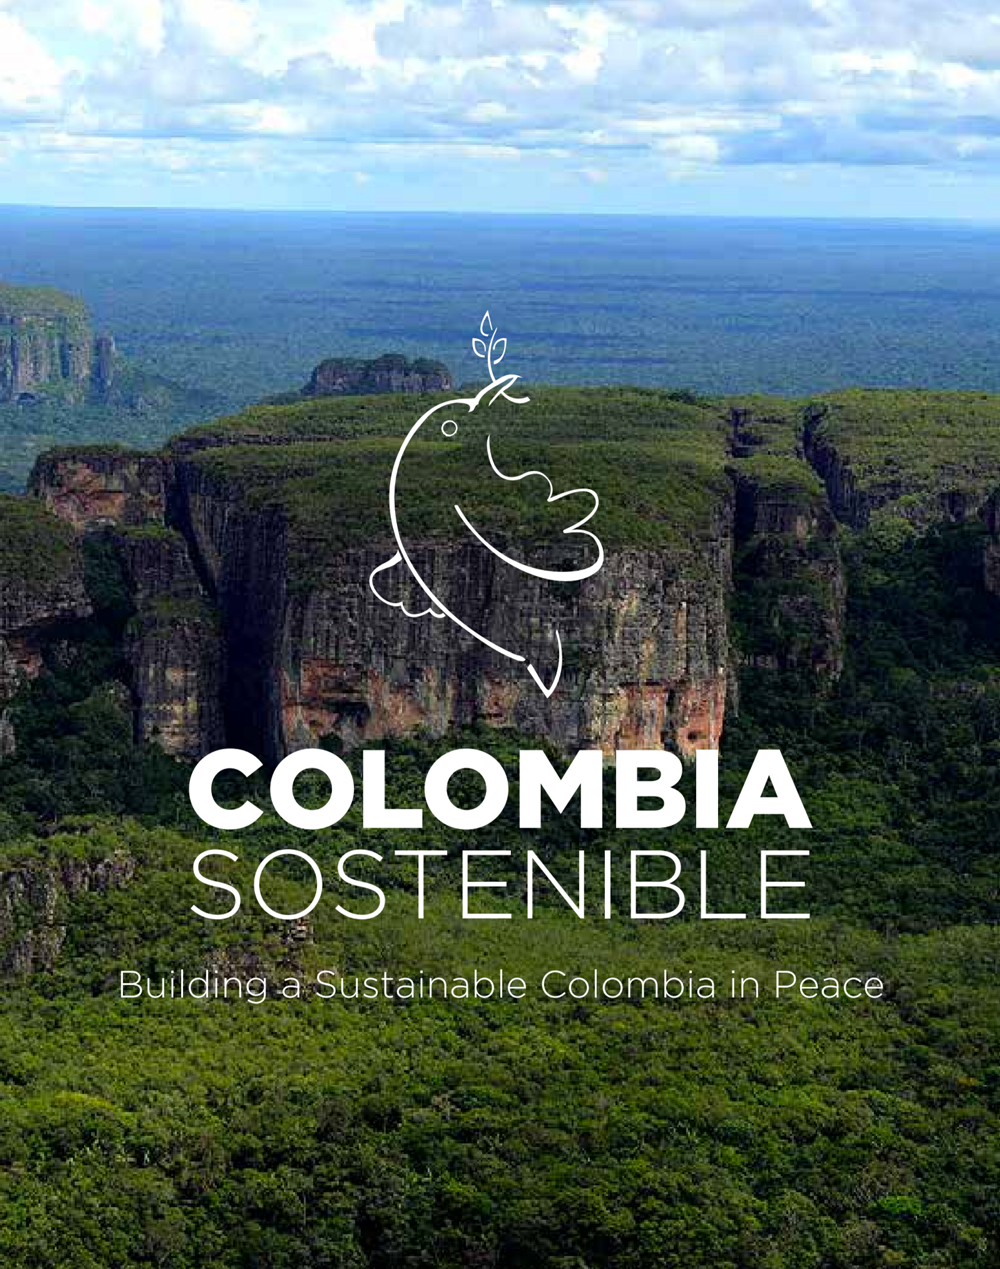 Colombia Sostenible